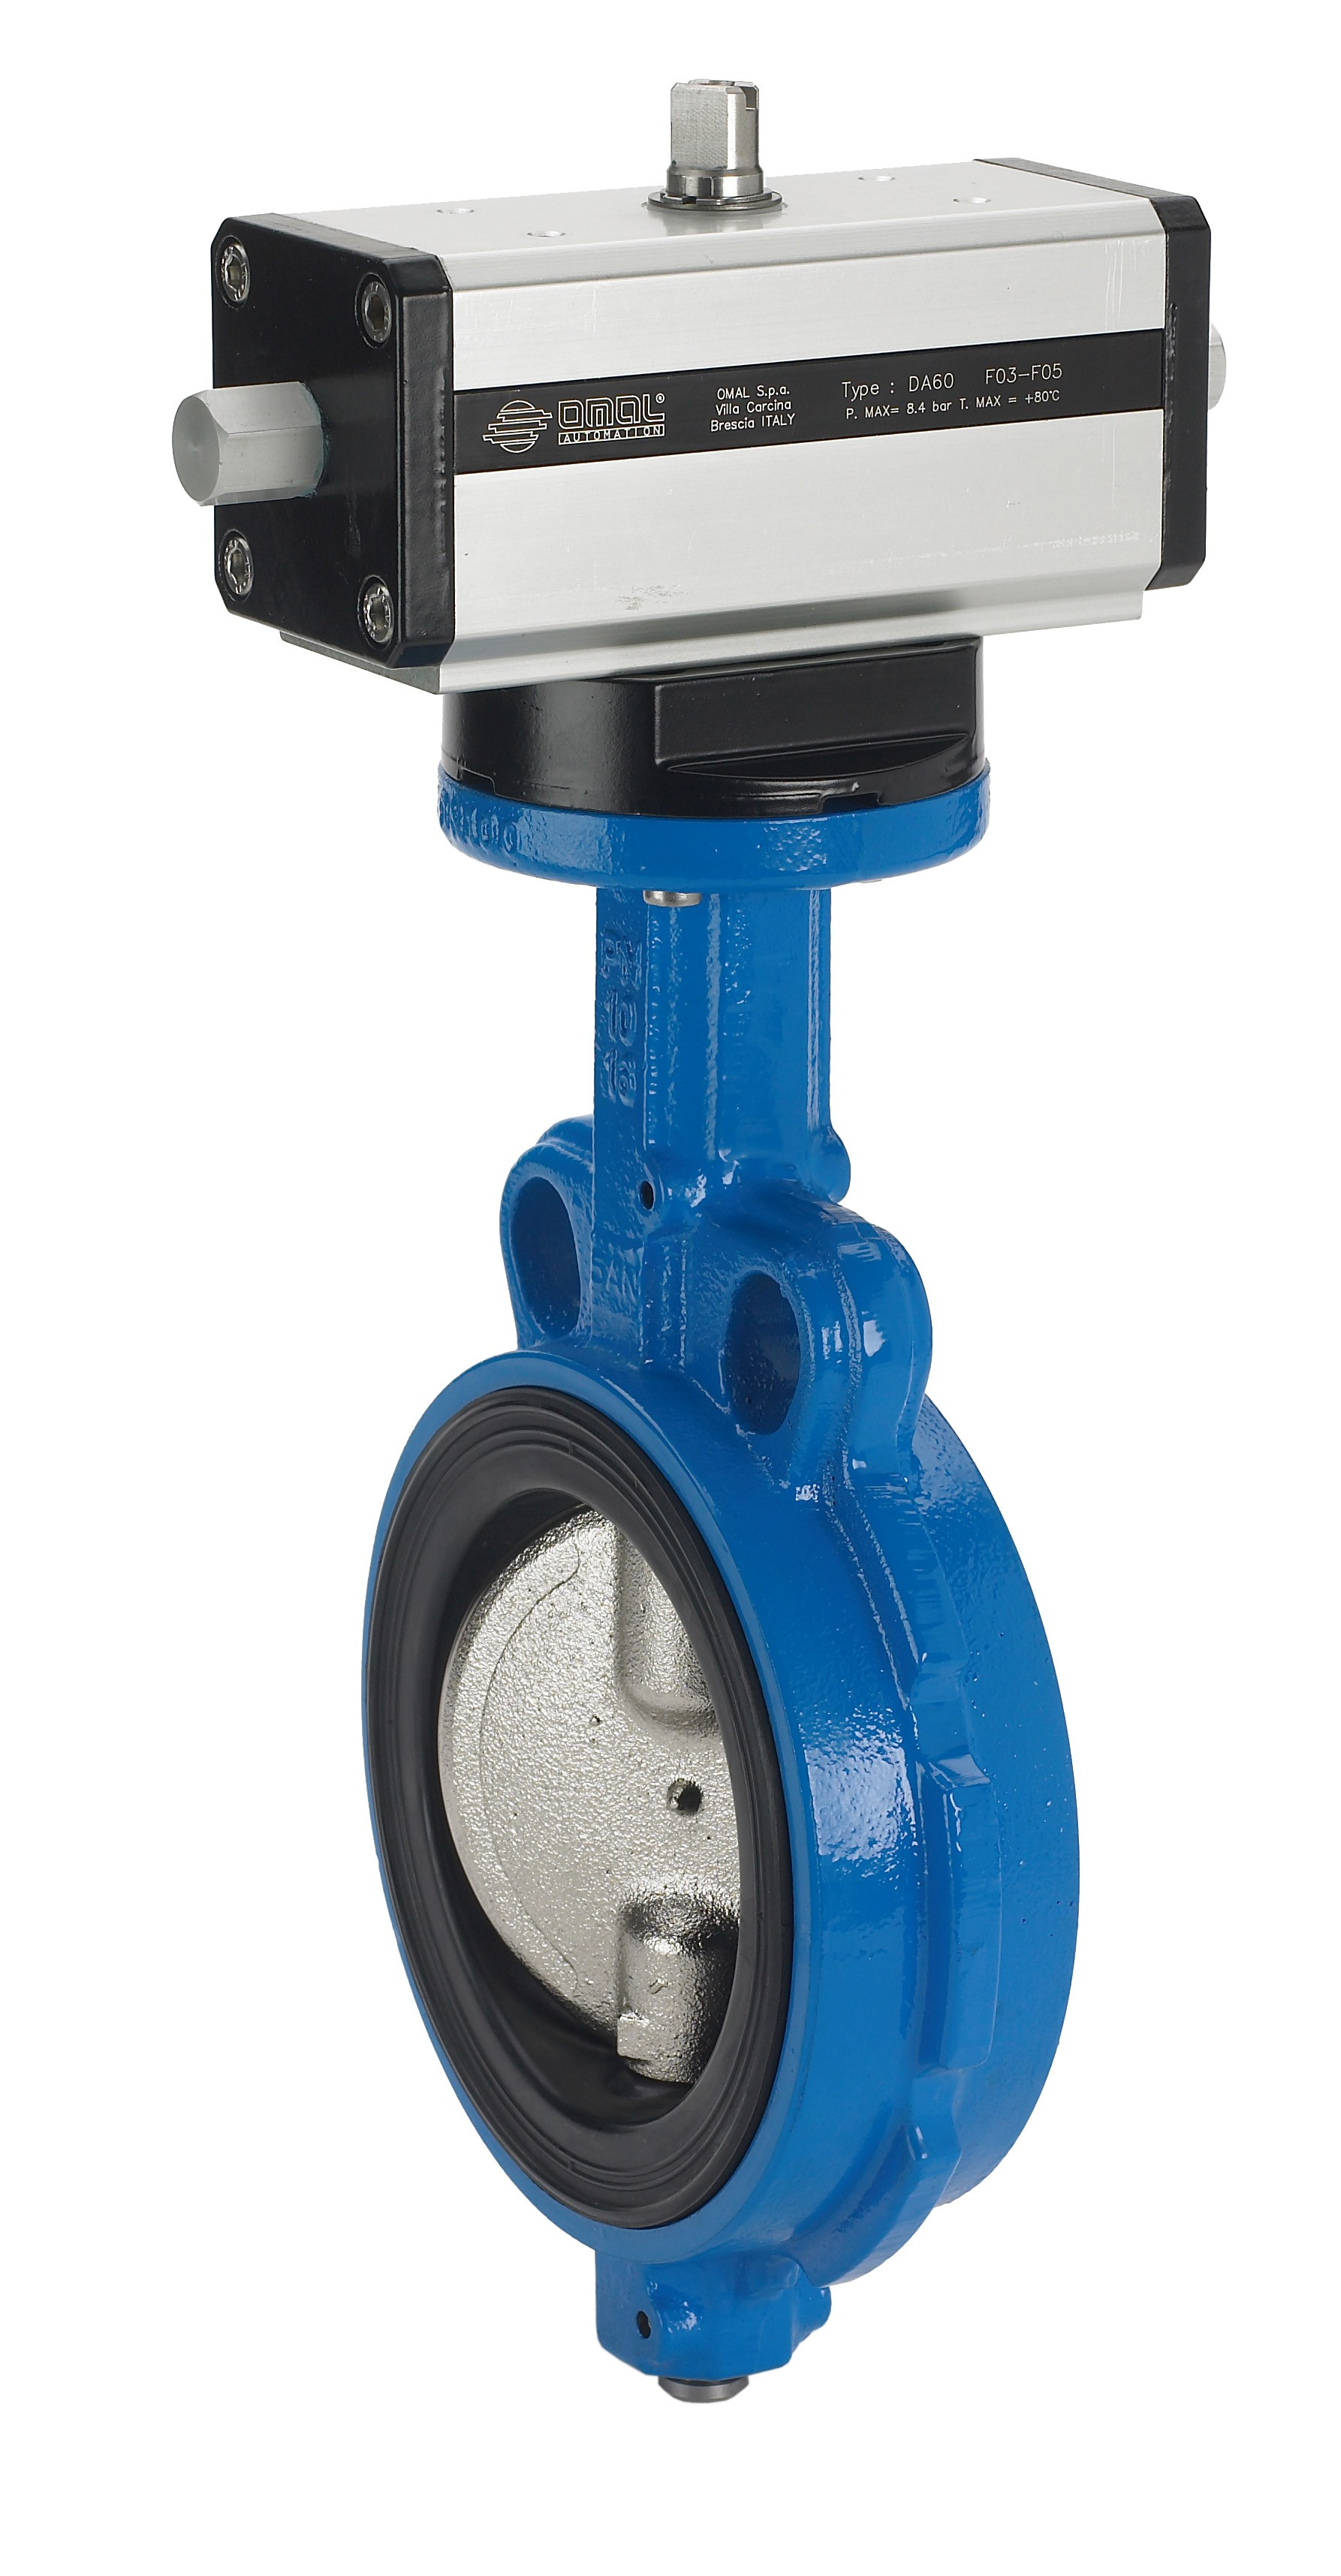 Buy Wafer Butterfly Valve and Double Acting Pneumatic Actuator at